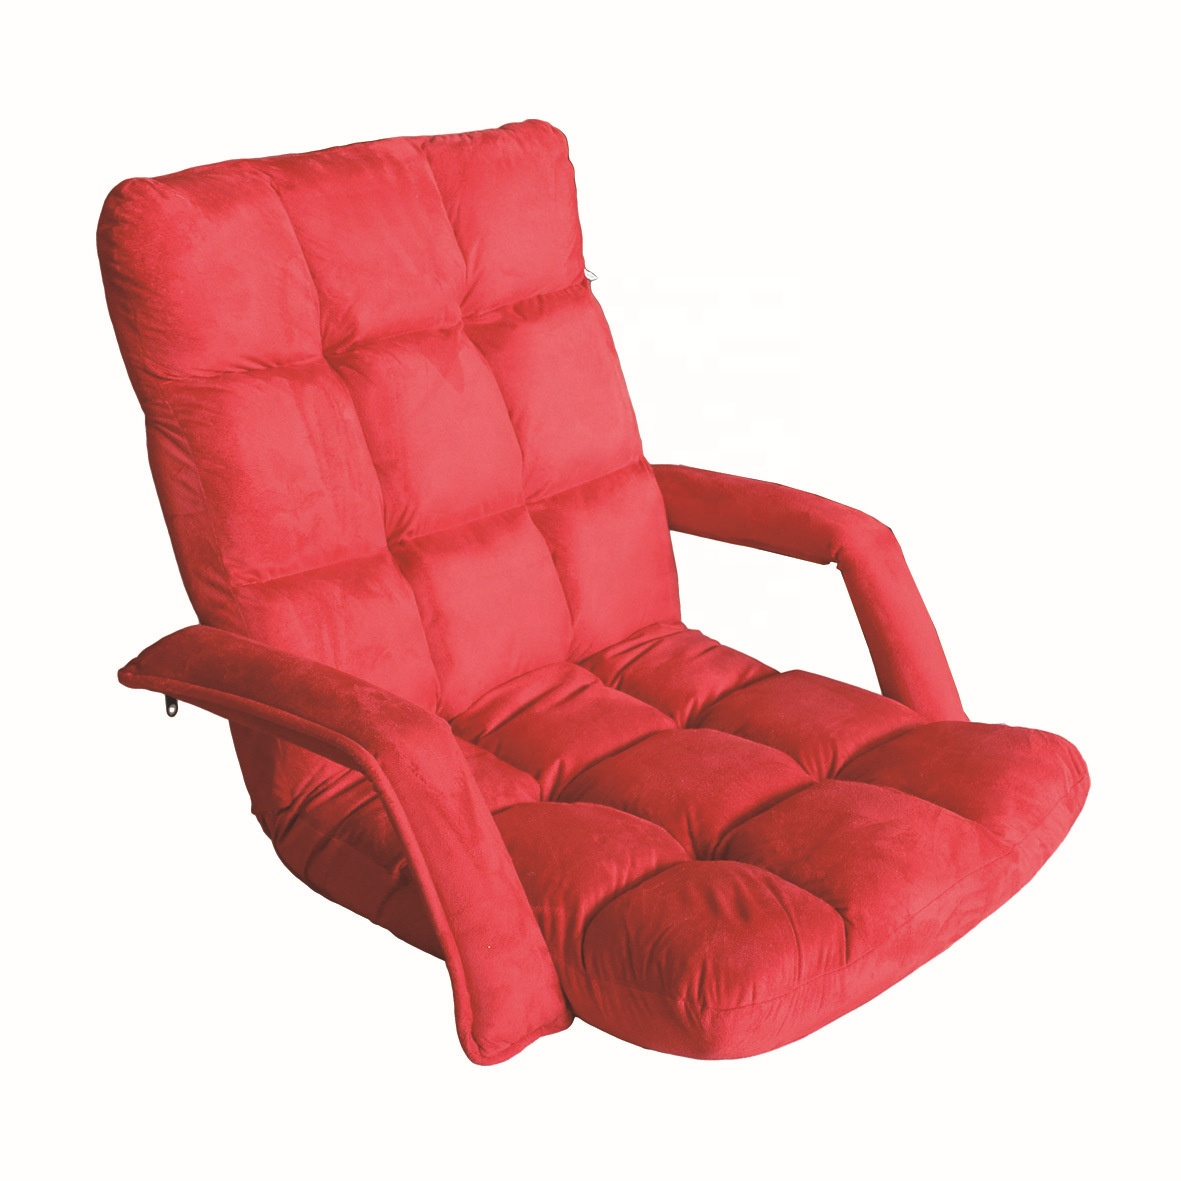 Adjustable floor chair Floor chair gaming Lazy sofa Comfy chair Six-speed adjustment